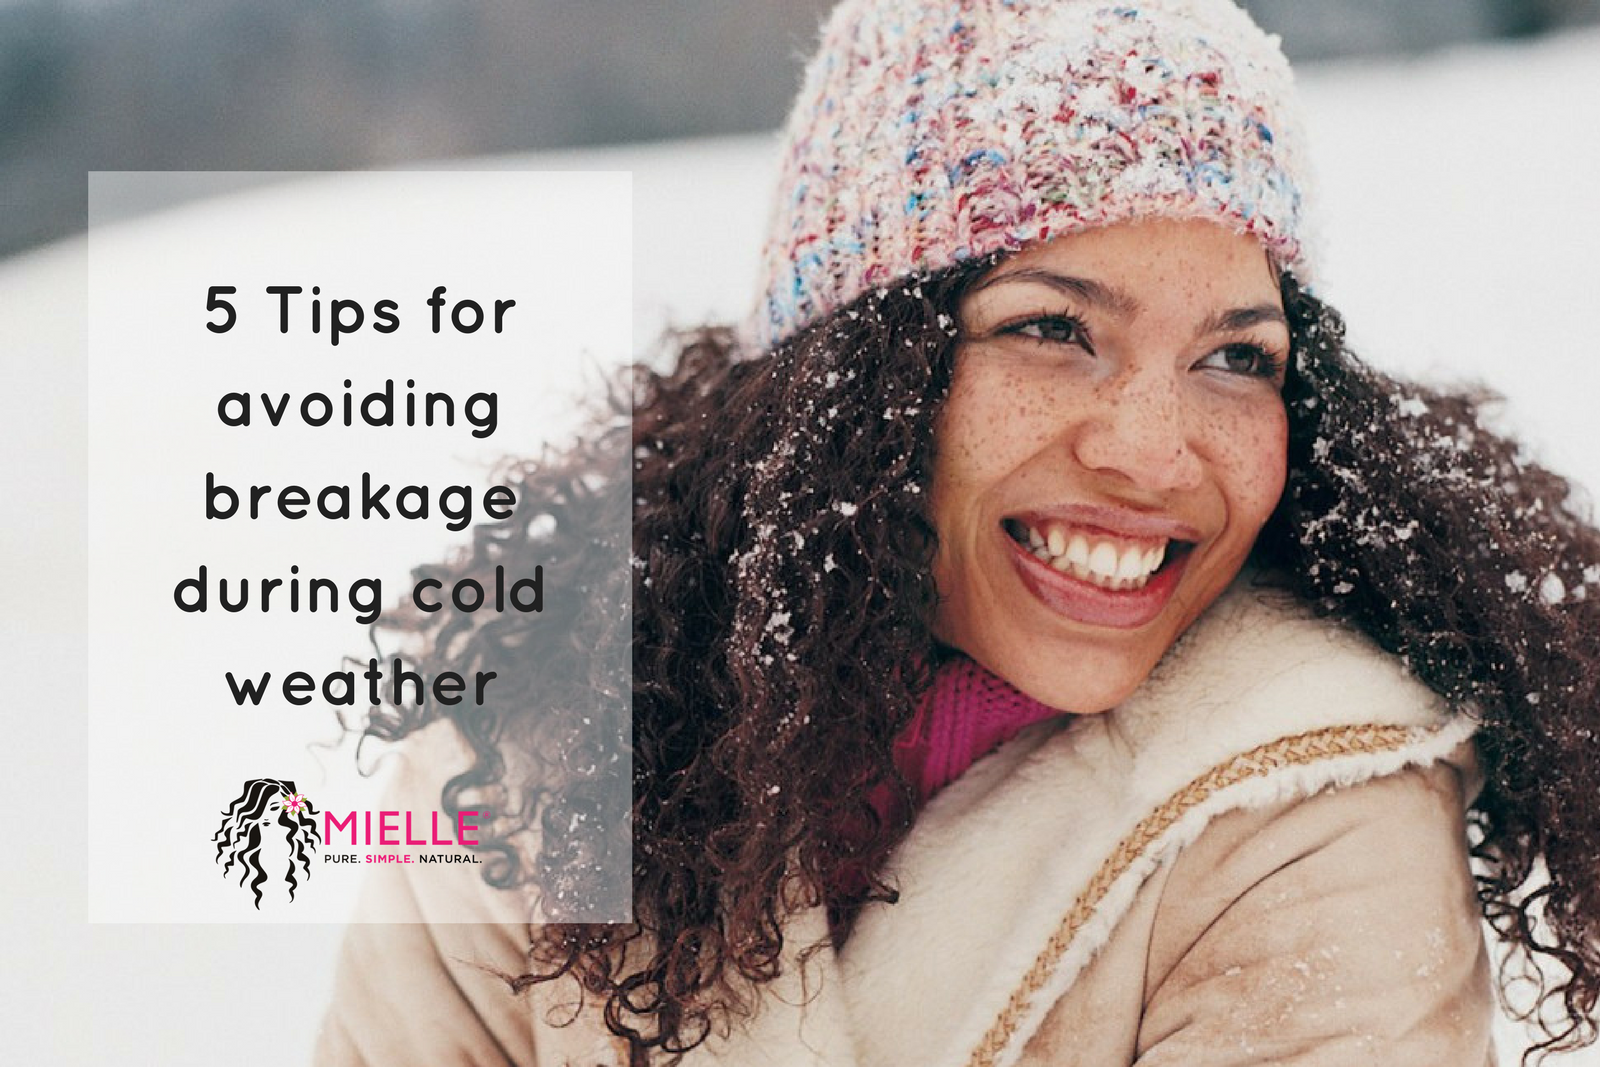 5 Tips for avoiding breakage during cold weather